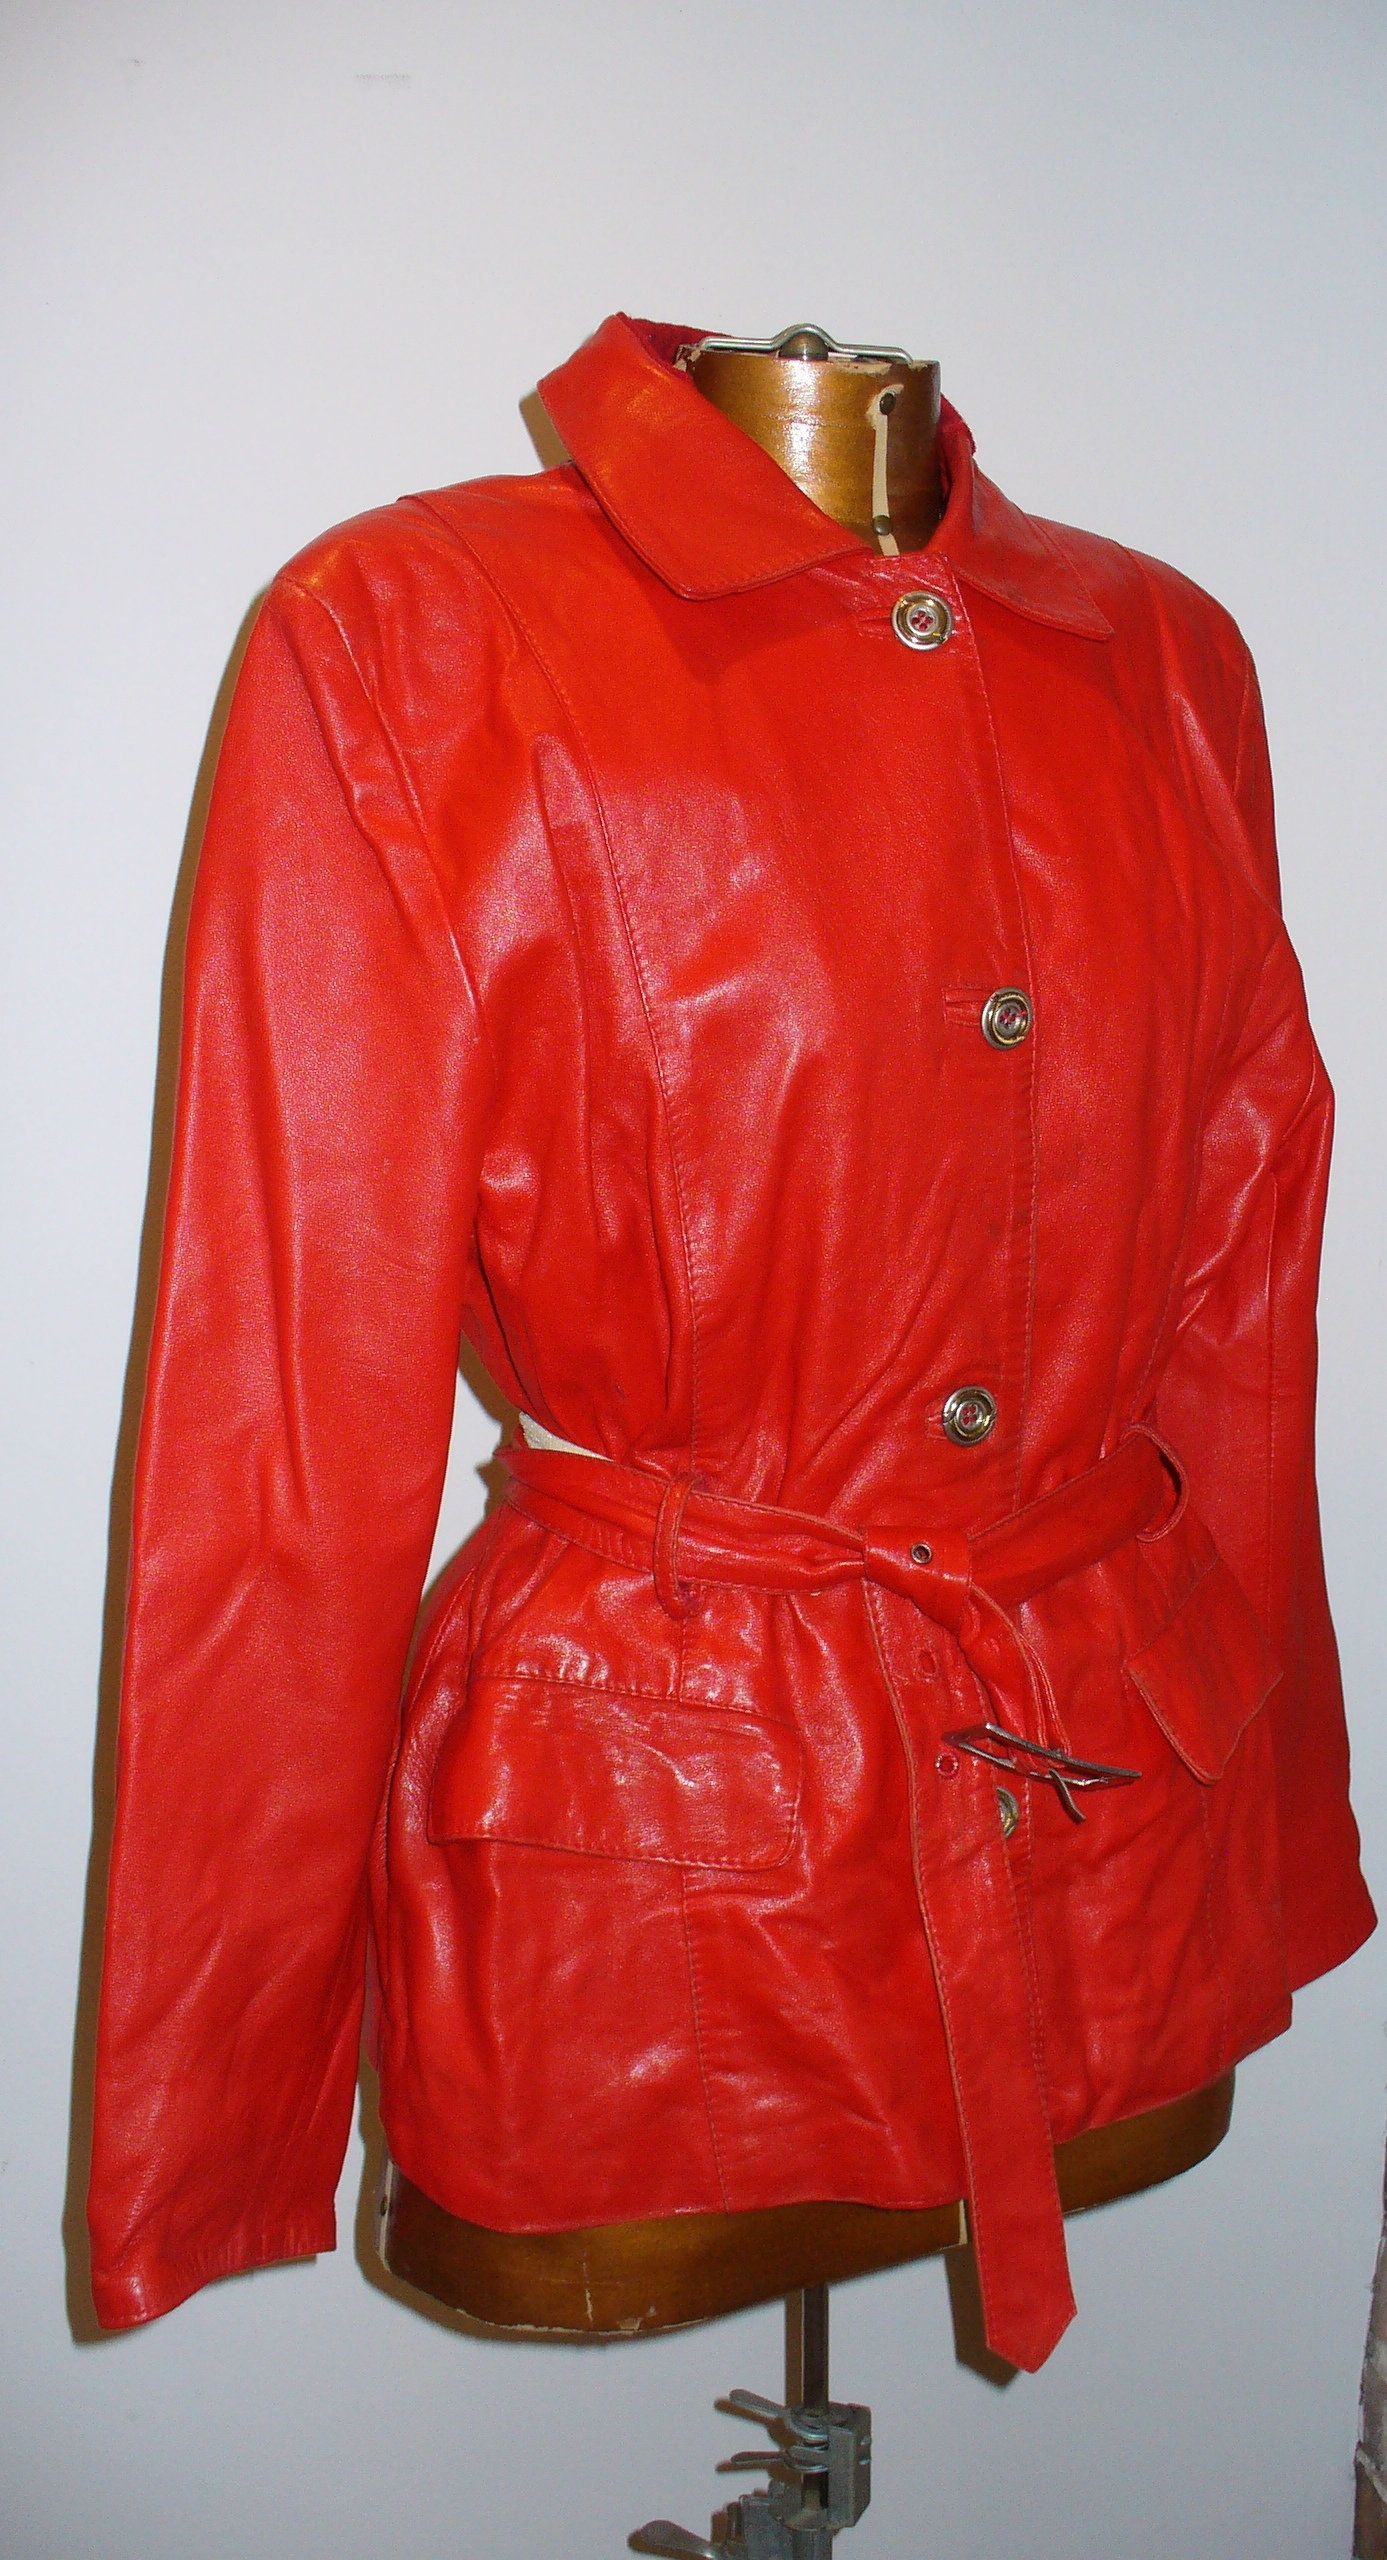 Peruzzi Leather Jacket VINTAGE Made in Italy Size M